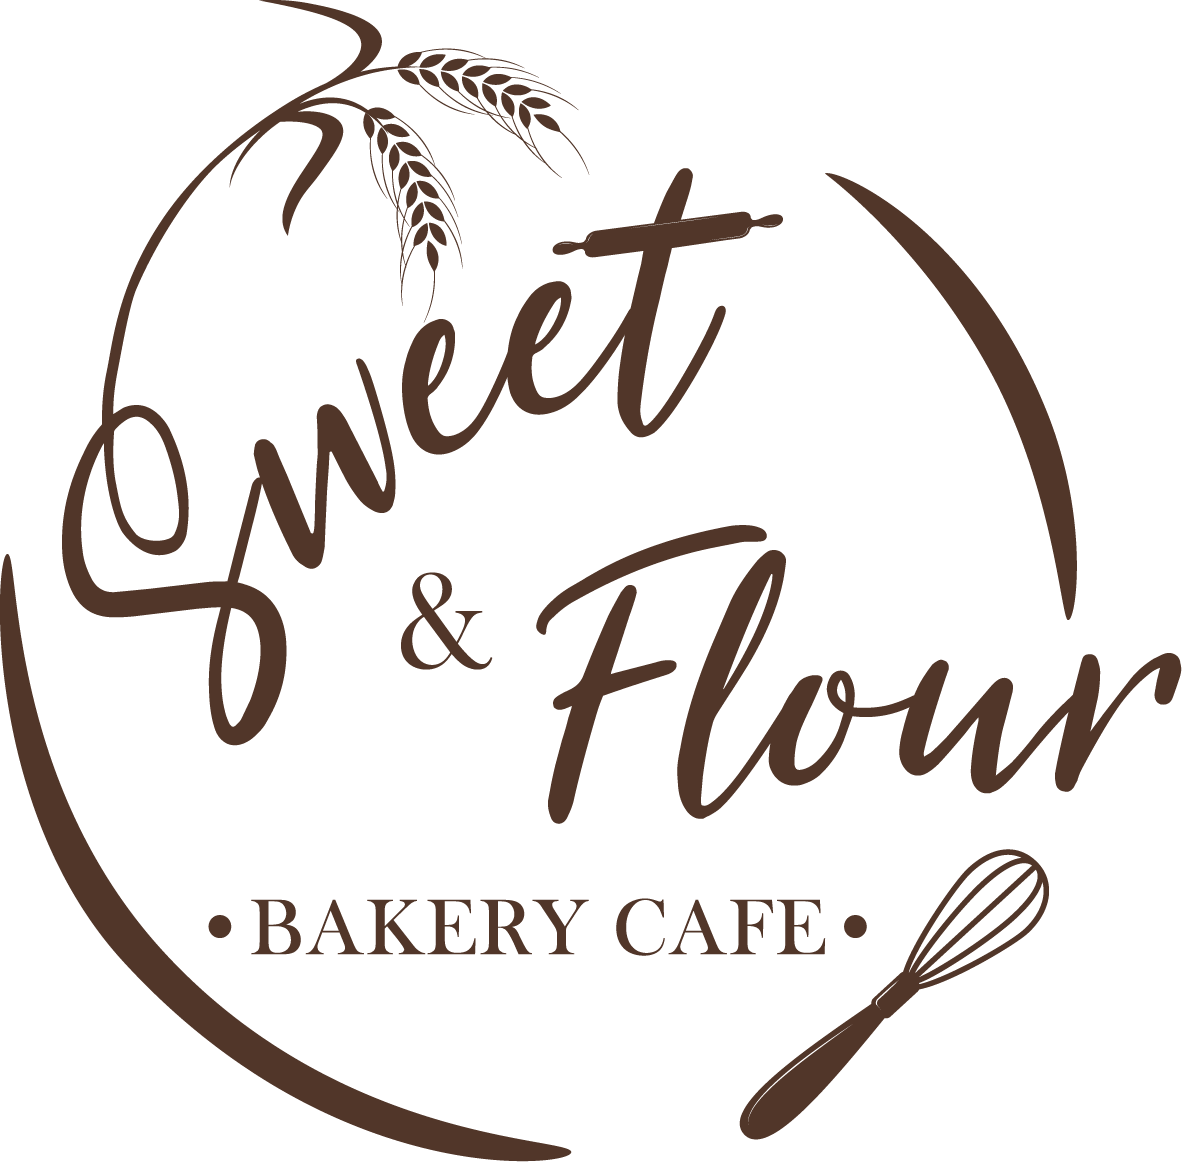 Sweet and Flour